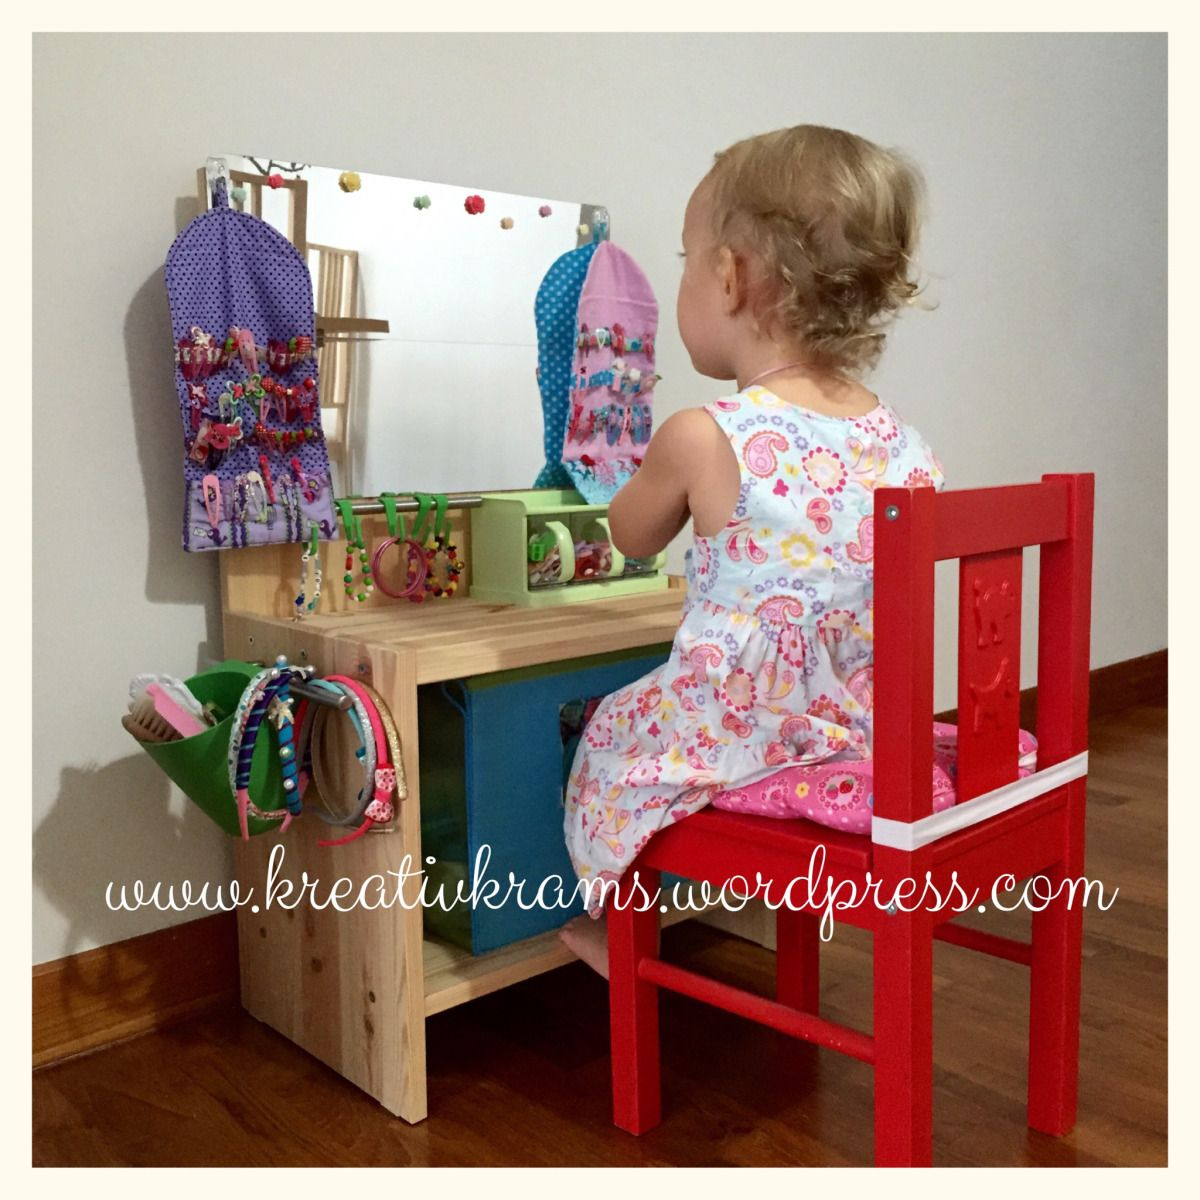 diy verkleide tisch kinderzimmerideen. Black Bedroom Furniture Sets. Home Design Ideas